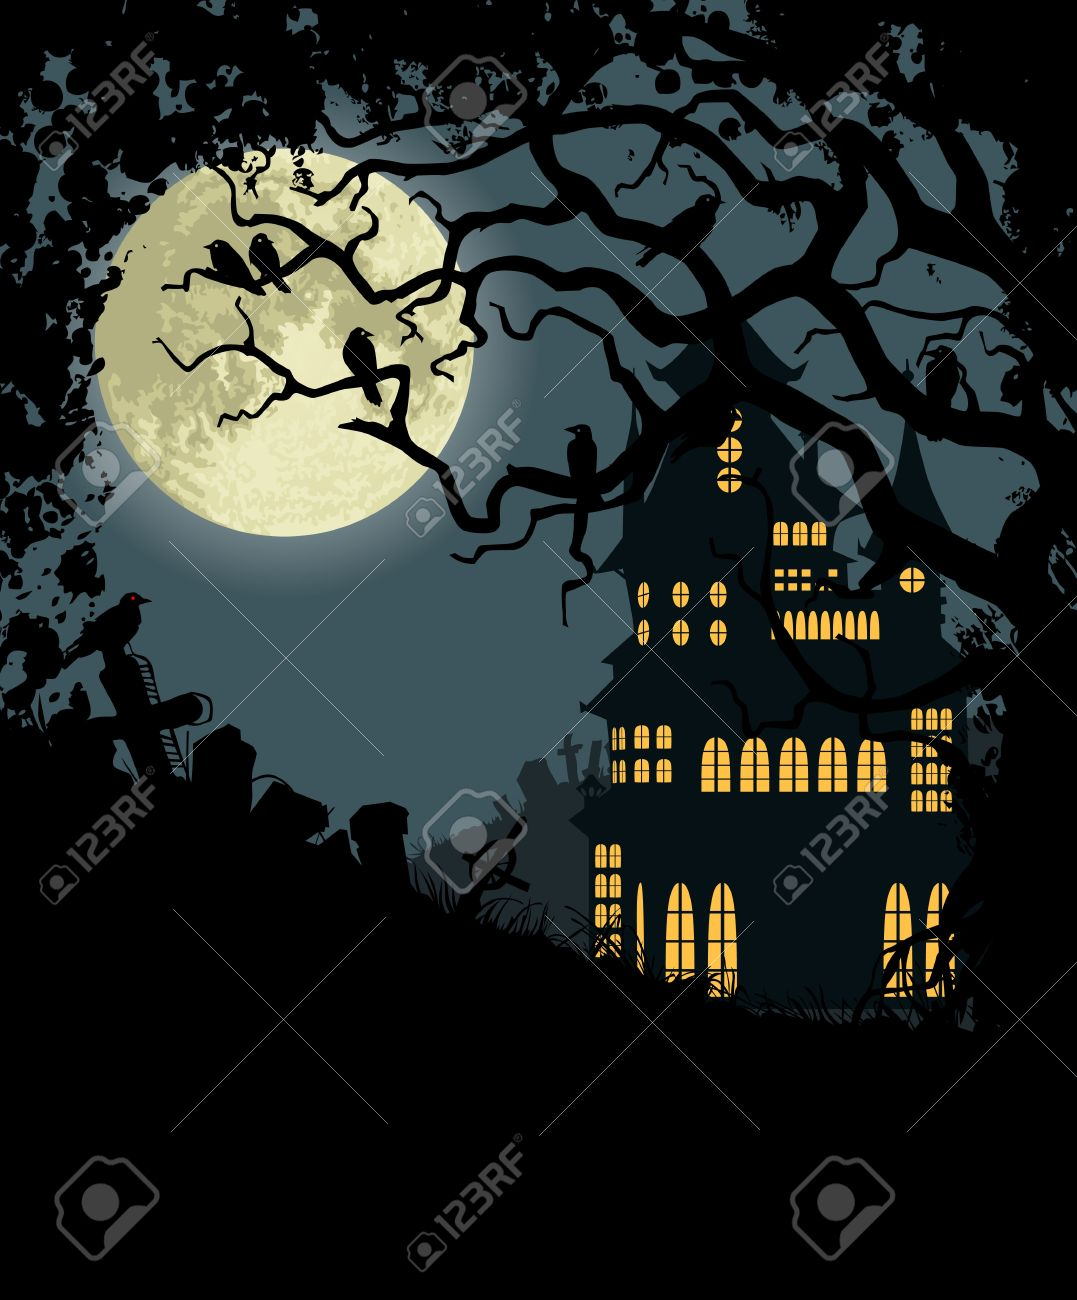 halloween background with haunted house tree crows and cemetery stock vector 10014010 - Halloween Crows